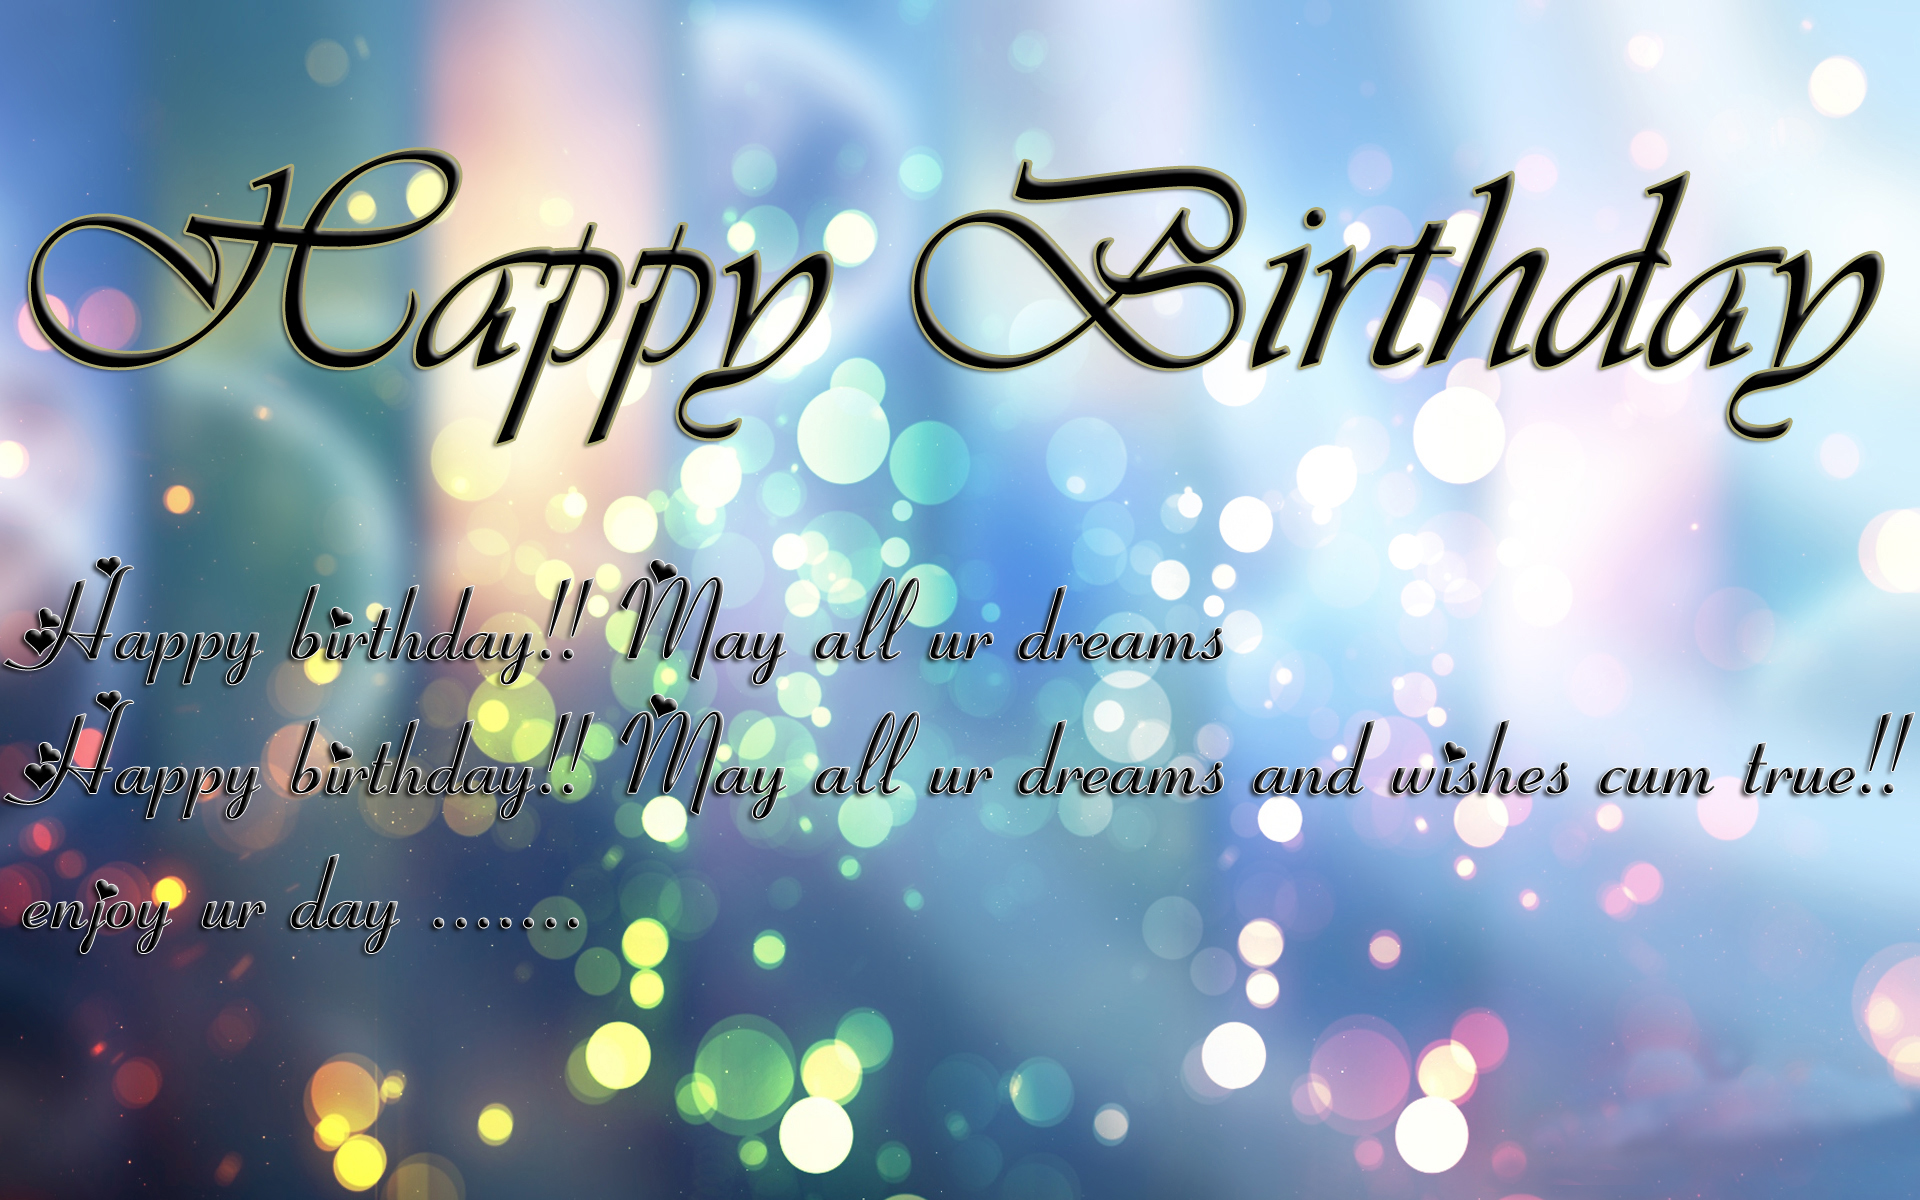 birthday message with picture for facebook ; Happy-birthday-wishes